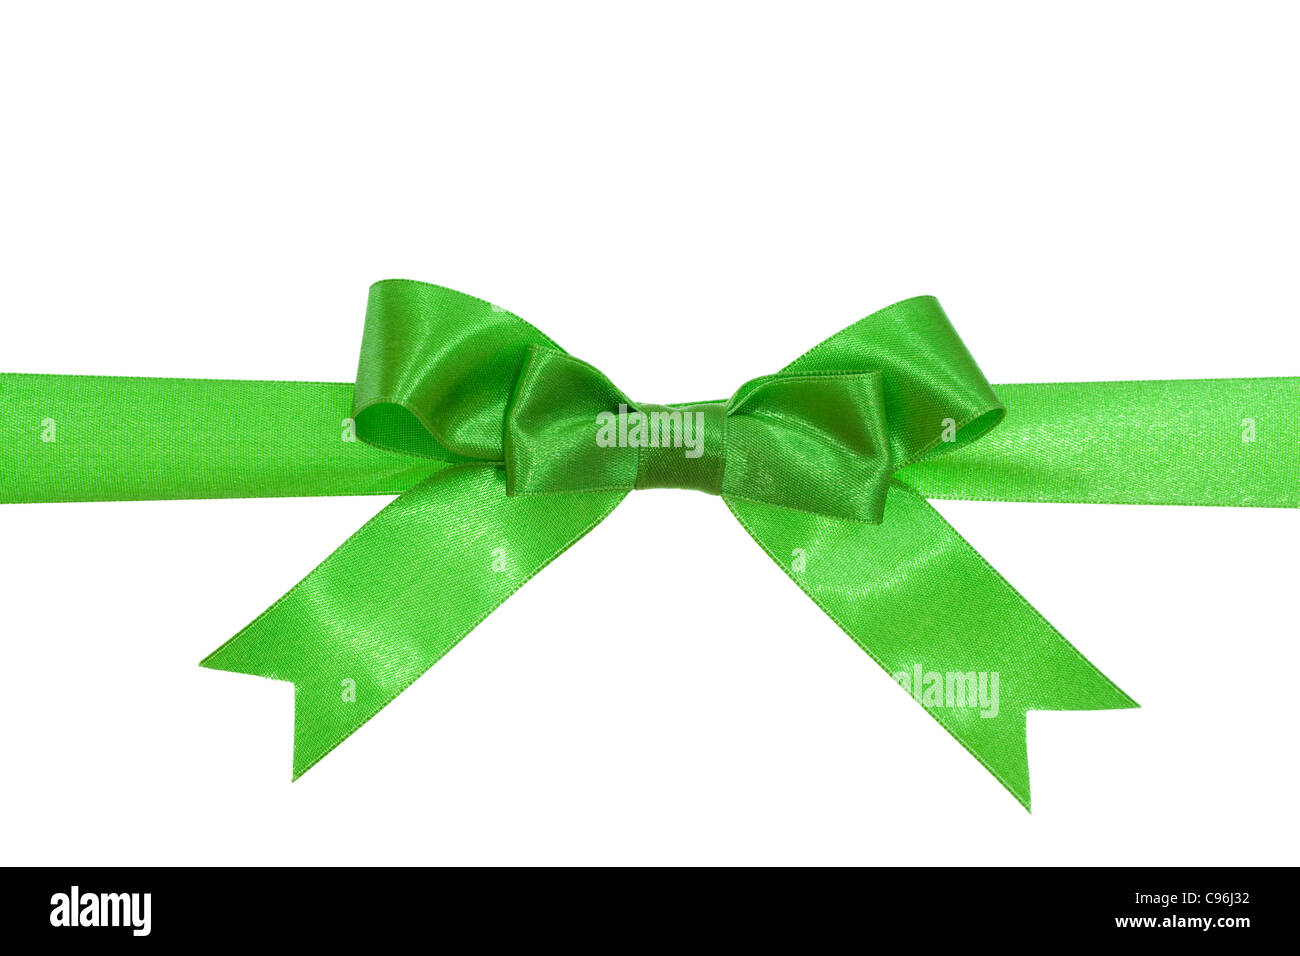 green ribbon with green bow on gift - Stock Image